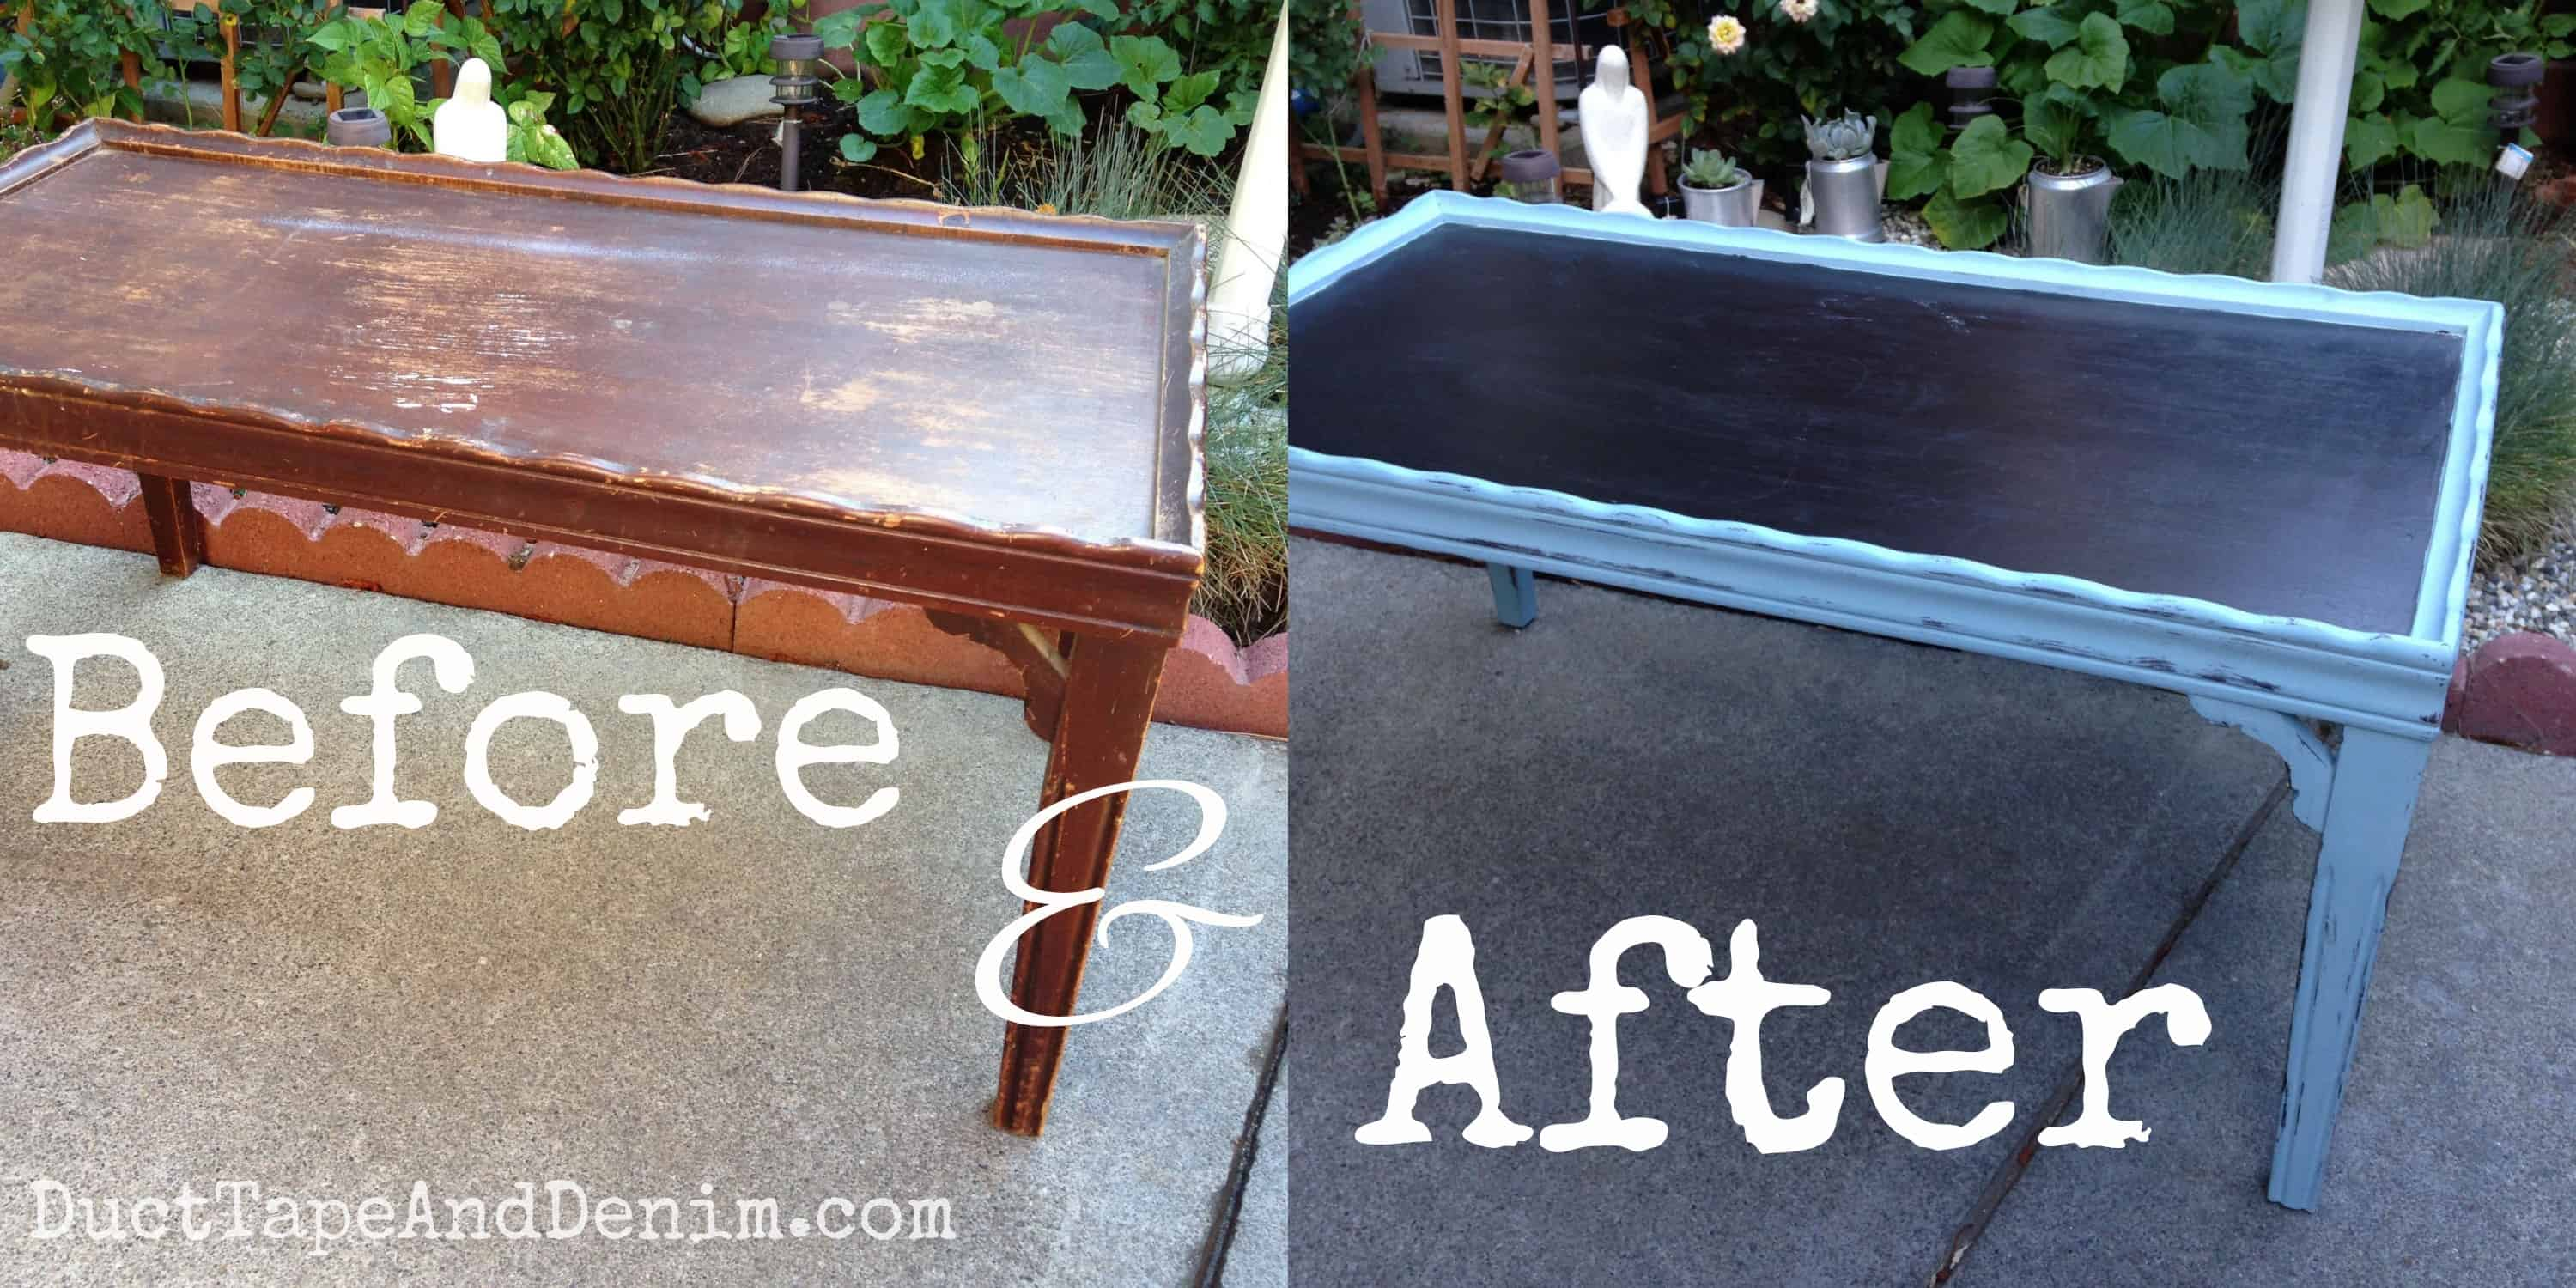 Before And After Photos Of The Coffee Table I Painted With Cece Caldwell S Memphis Blue And